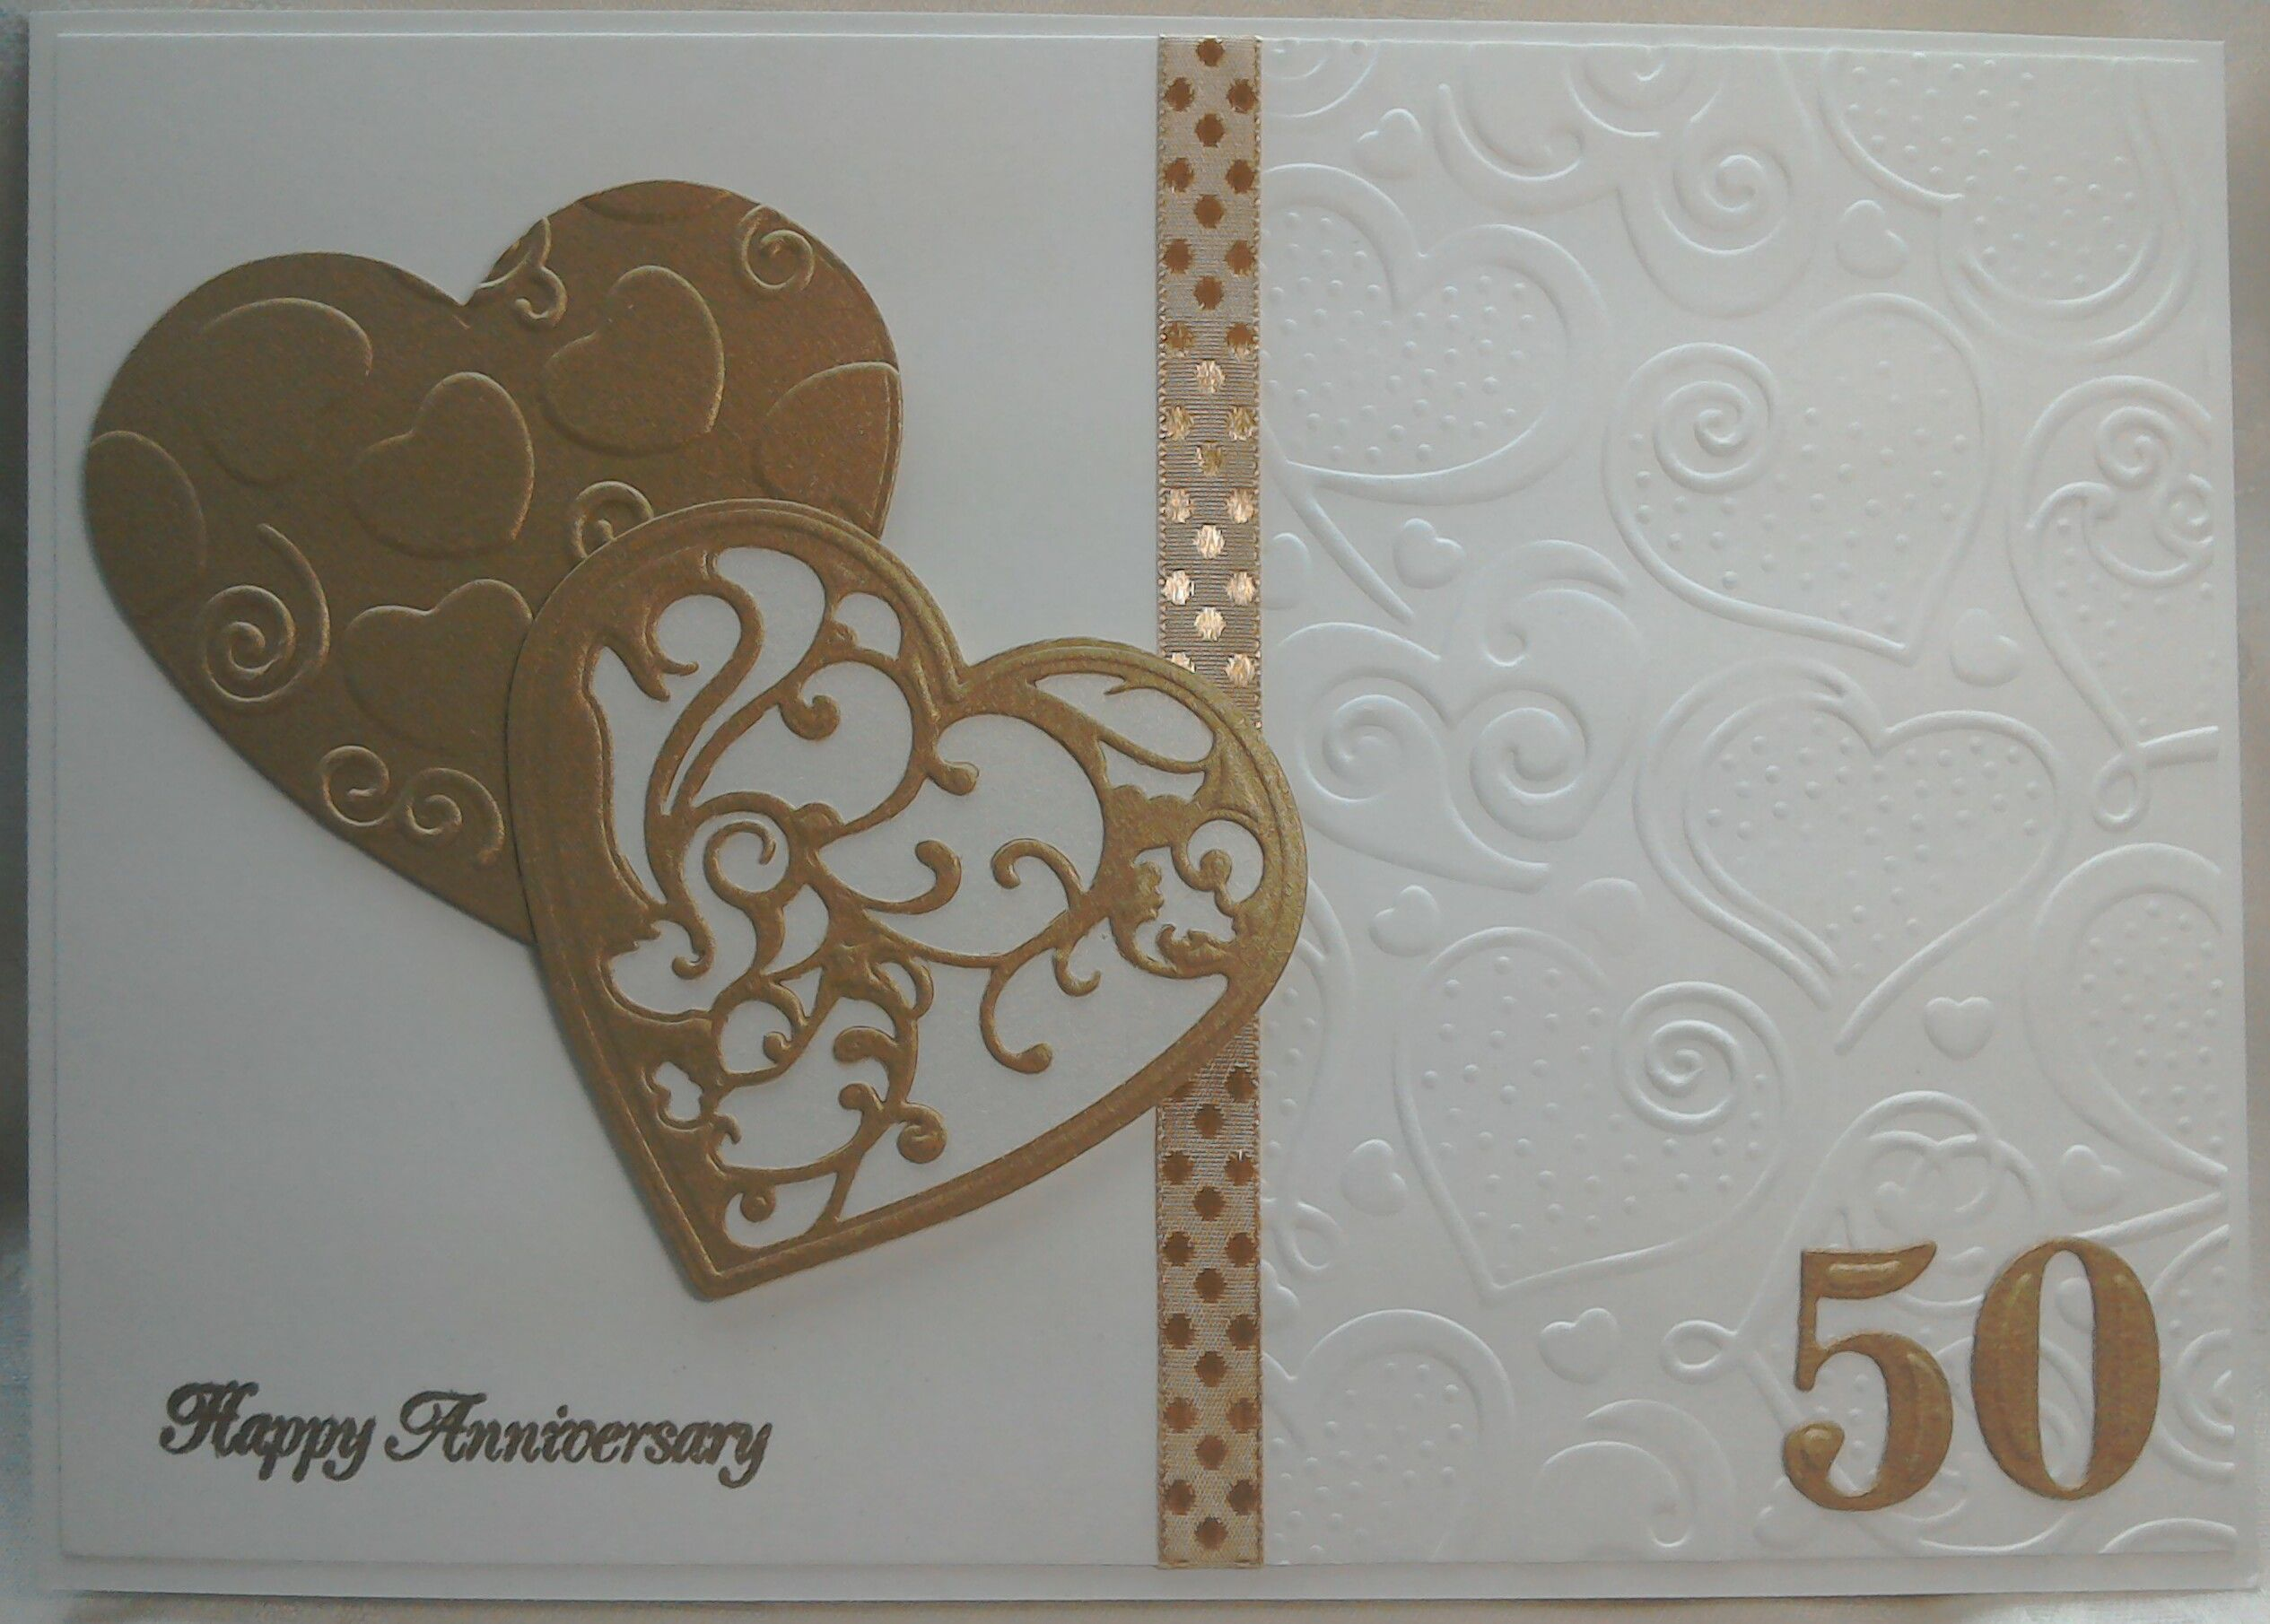 Made by Lynne Lee - Spellbinders Vines of Passion heart dies & hearts embossing folder with Tonic numeral dies used to make this golden wedding anniversary card